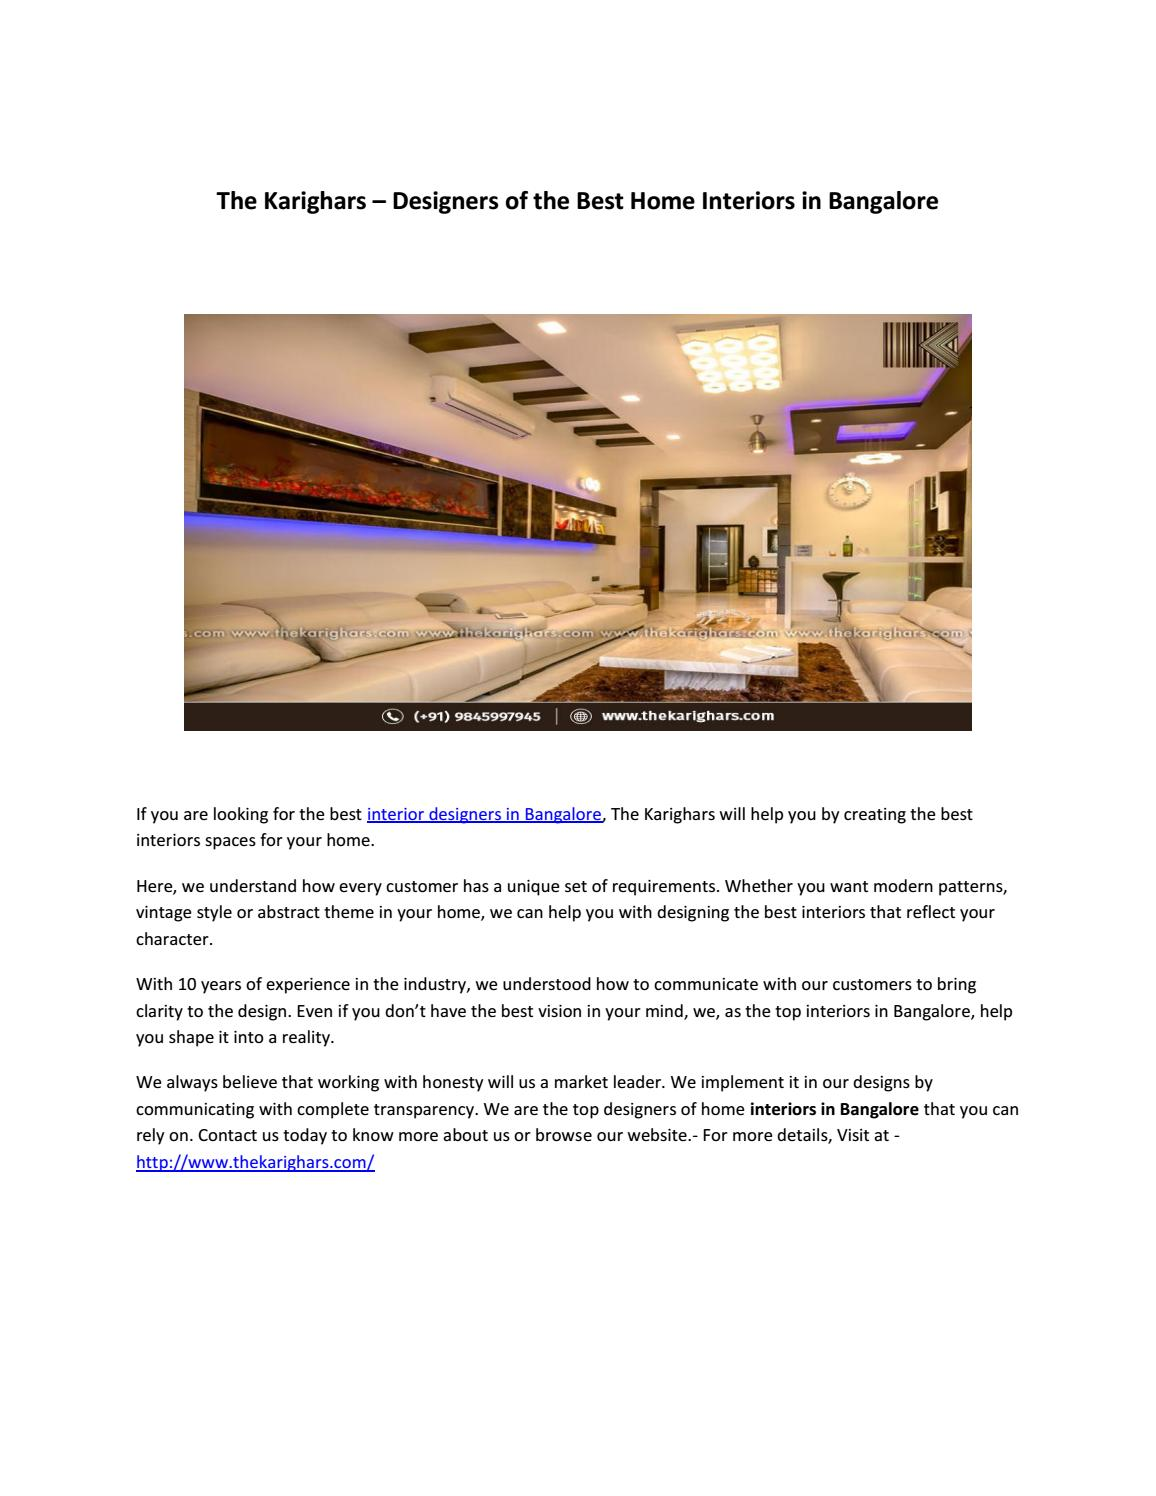 The Karighars Top Villa Interior Designer In Bangalore By The Karighars Issuu